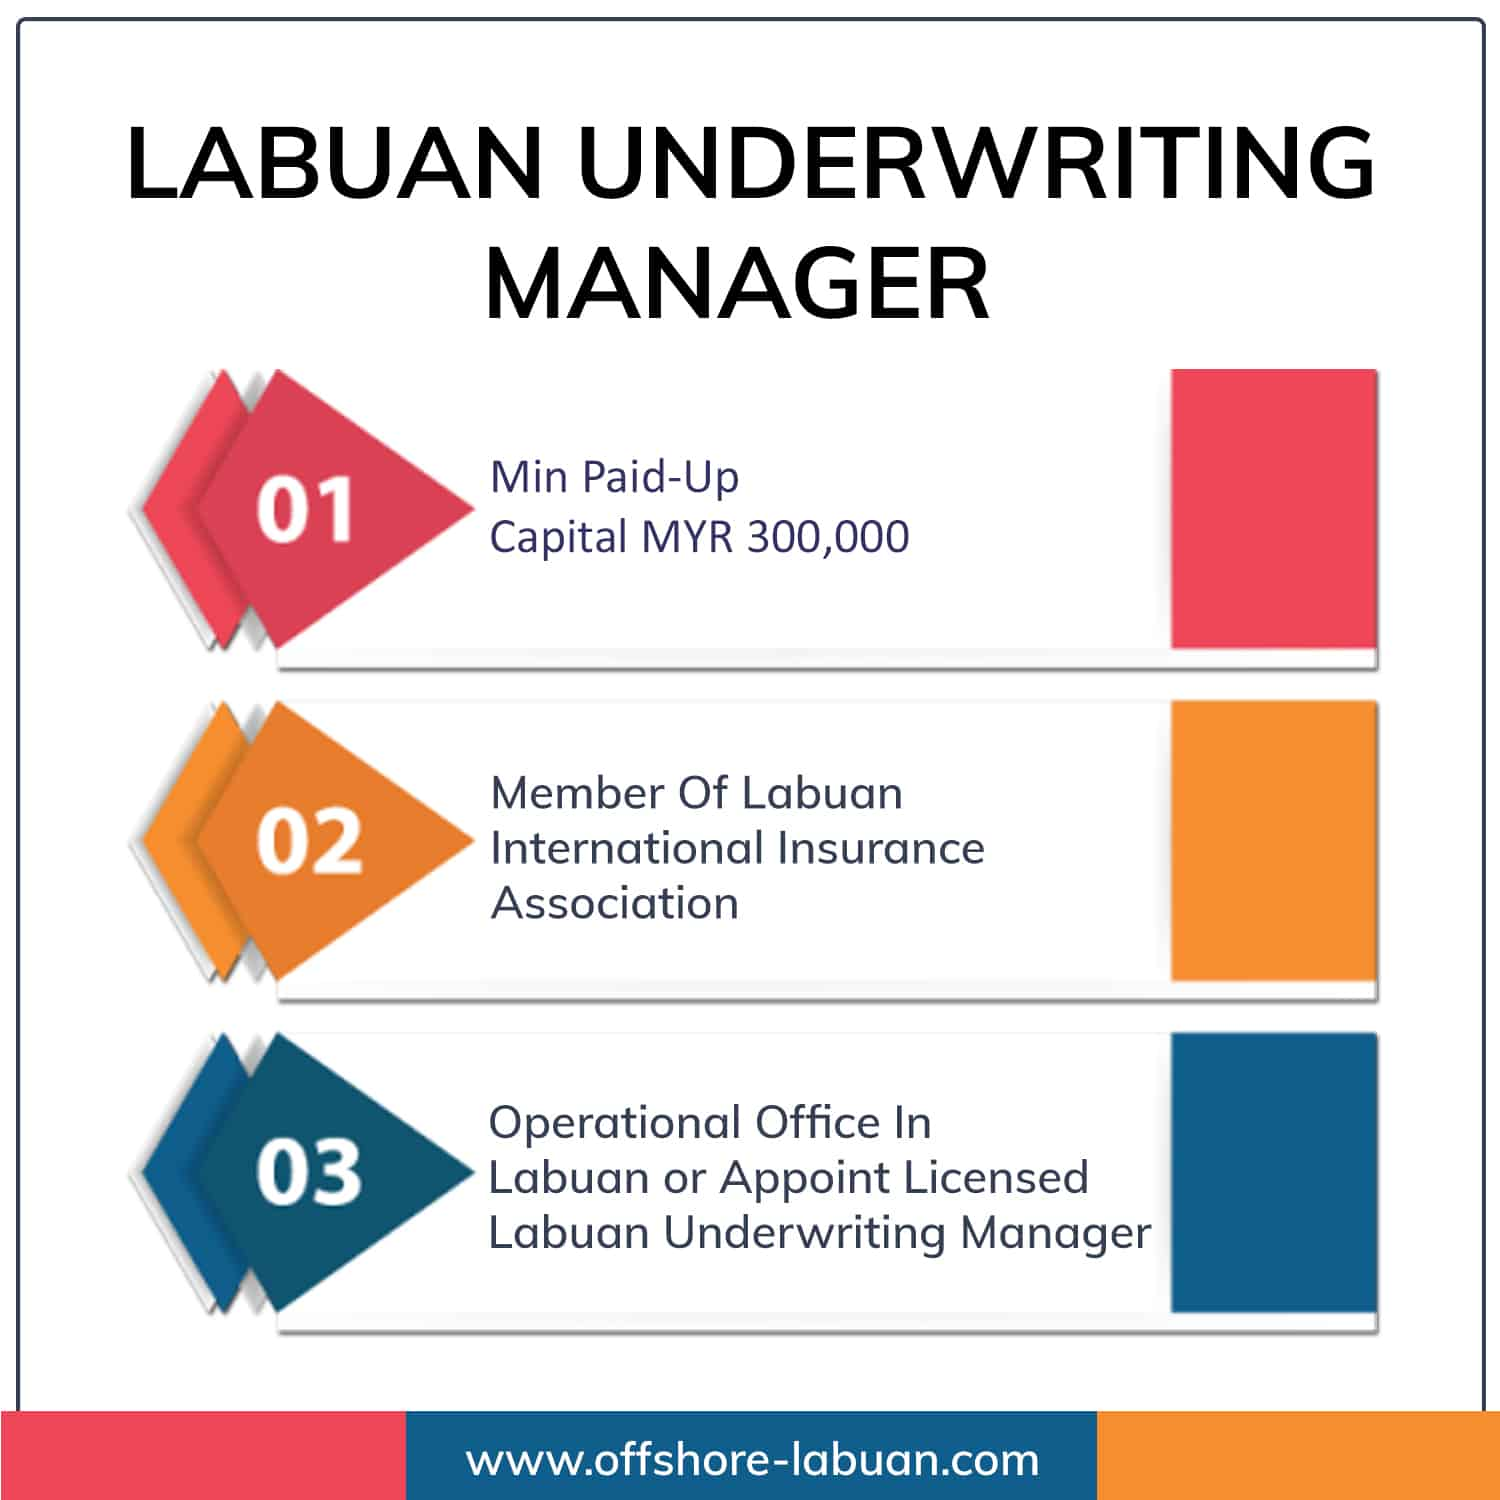 LABUAN UNDERWRITING MANAGER